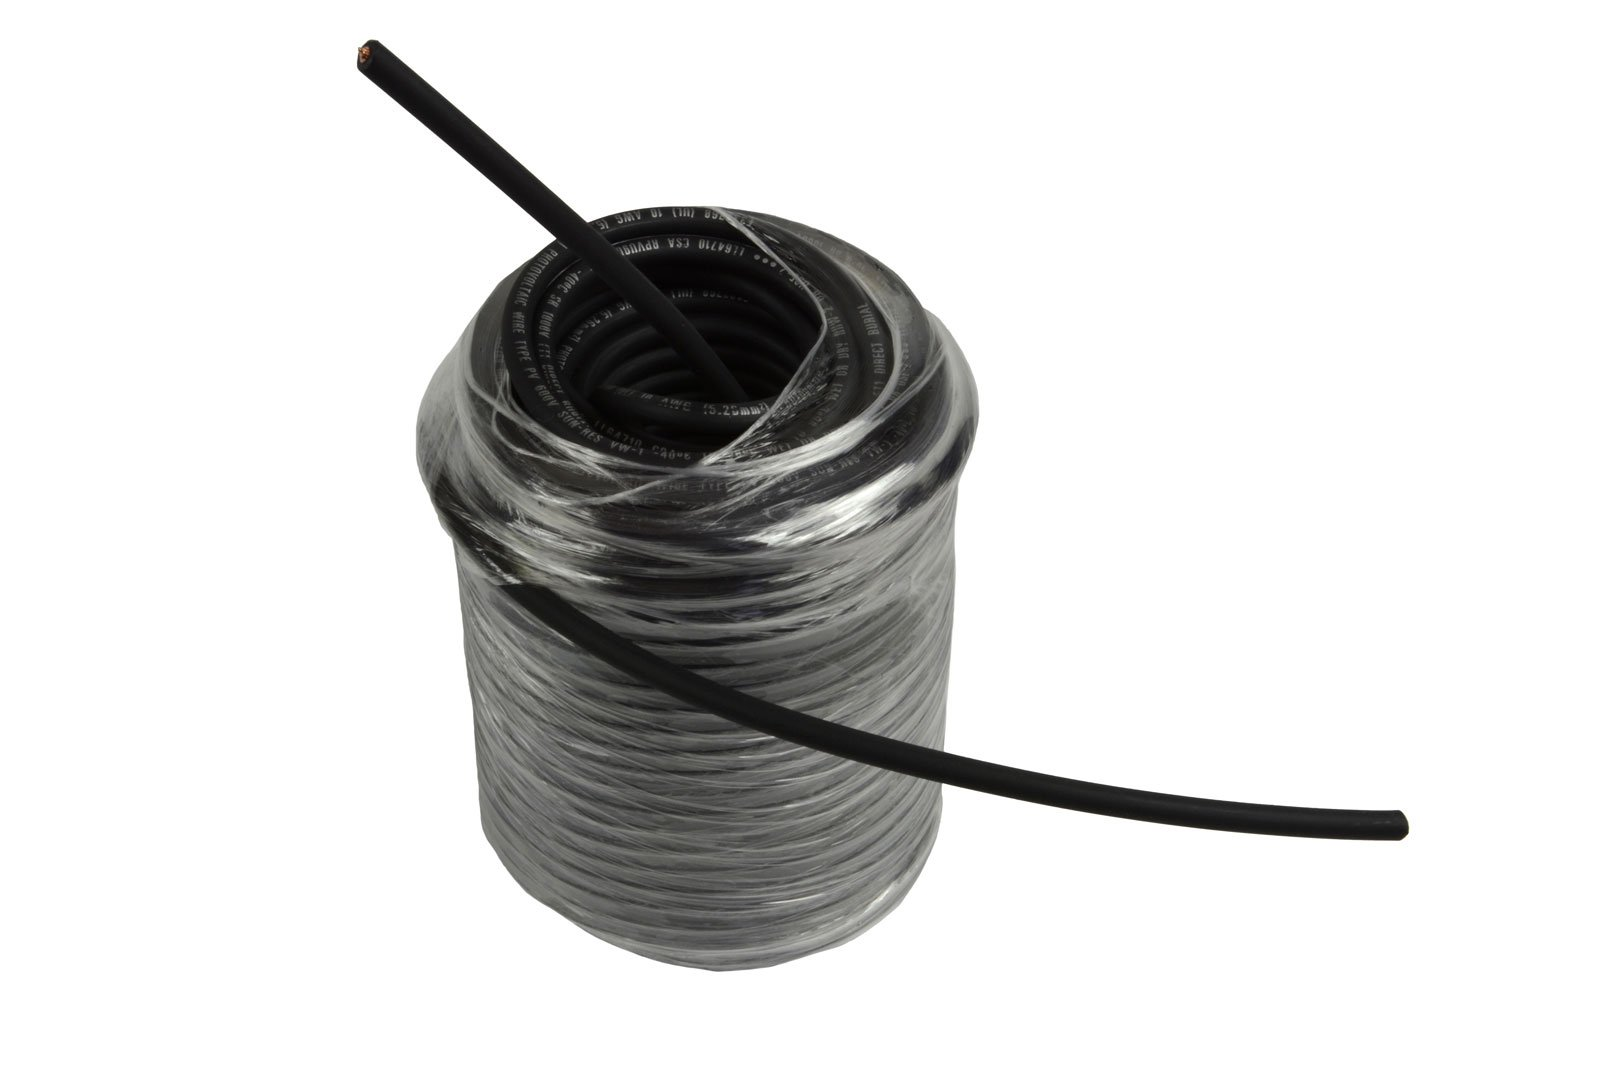 Temco 10 AWG Solar Panel Wire 100' Power Cable Black UL 4703 Copper Made in USA PV Gauge by Temco (Image #1)